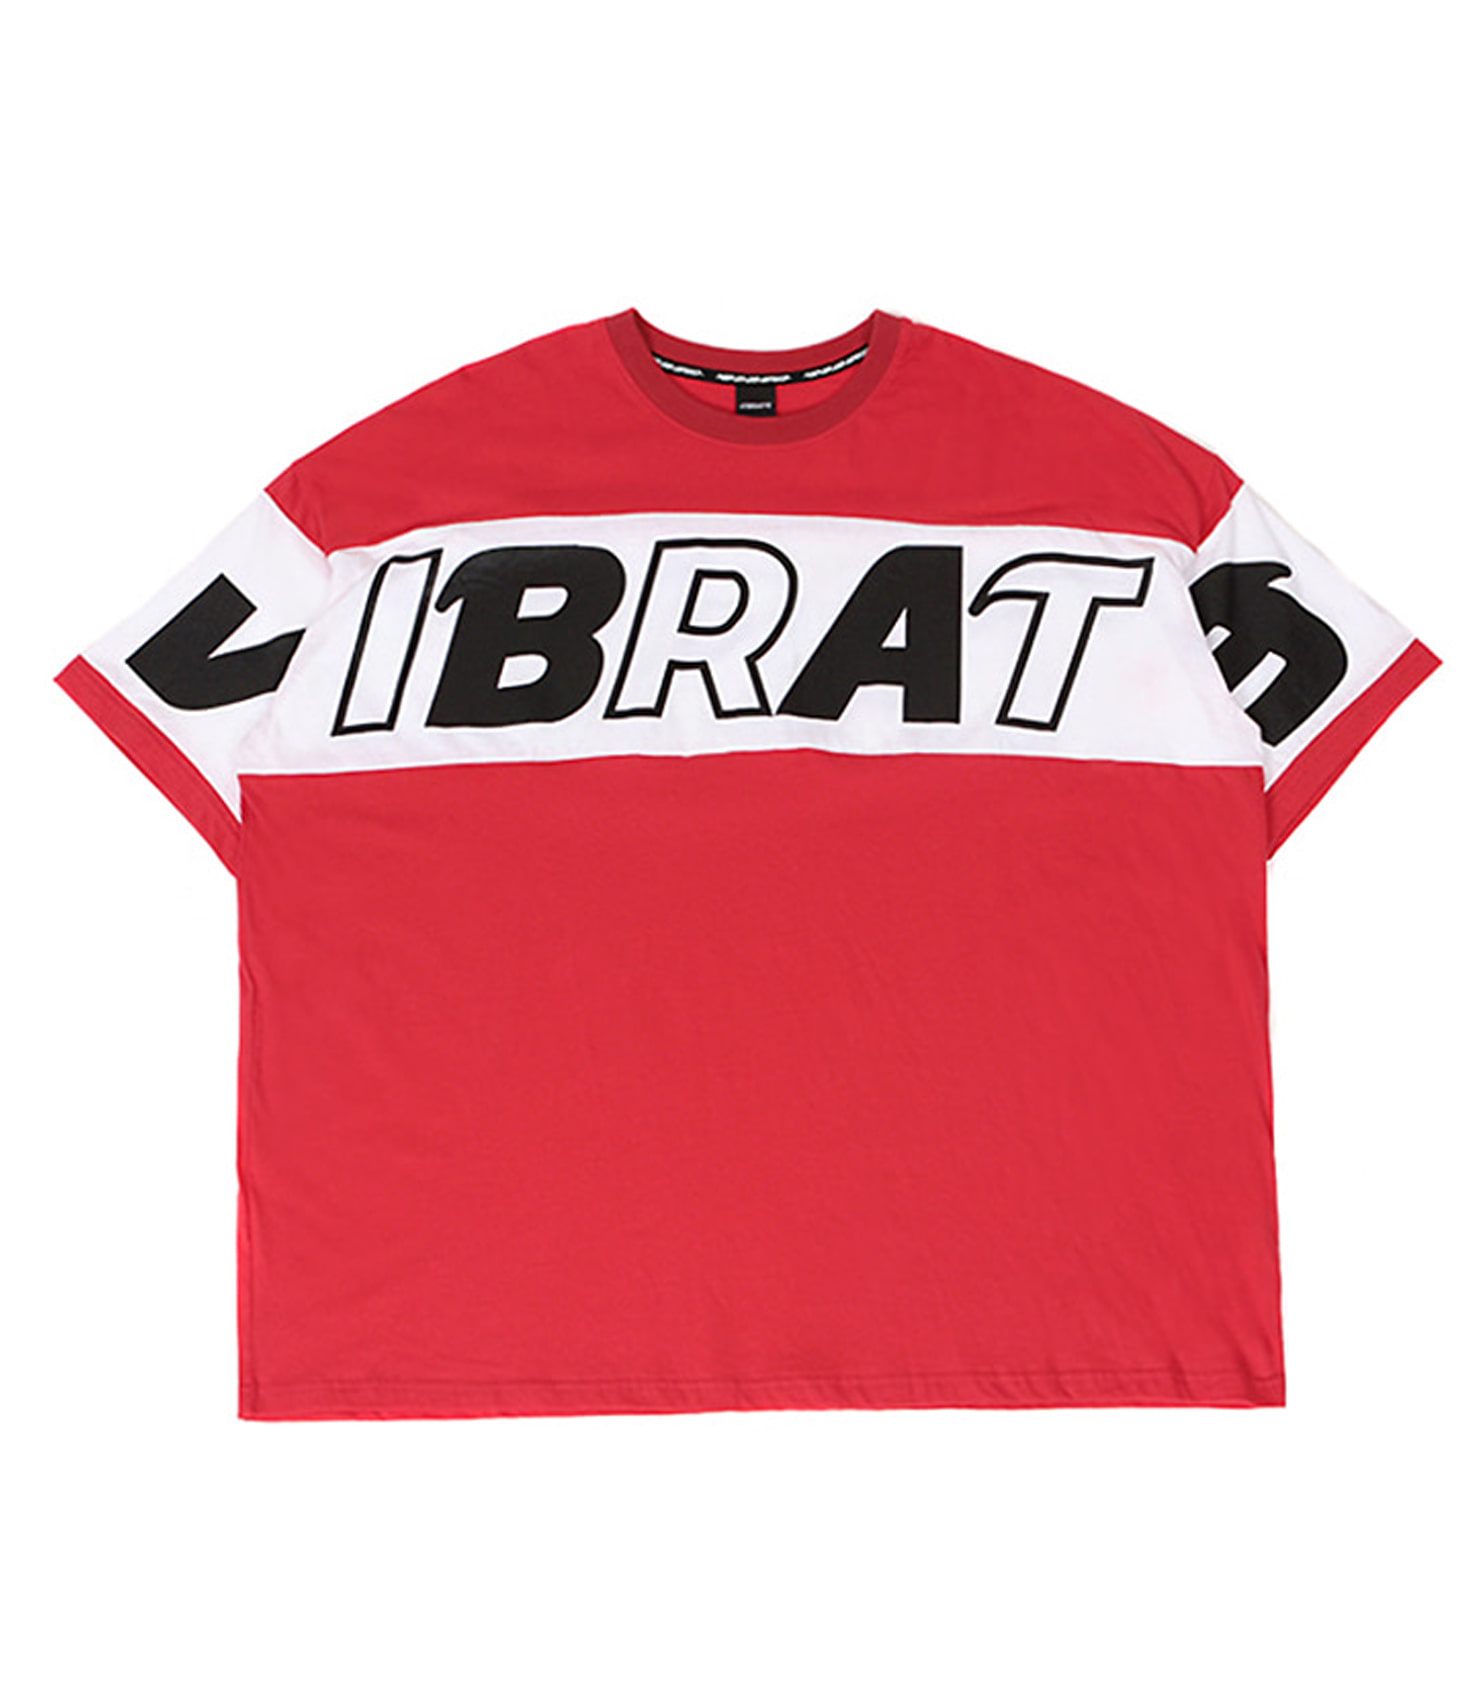 VIBRATE - COLOR SCHEME LOGO T-SHIRT (WHITE&RED)